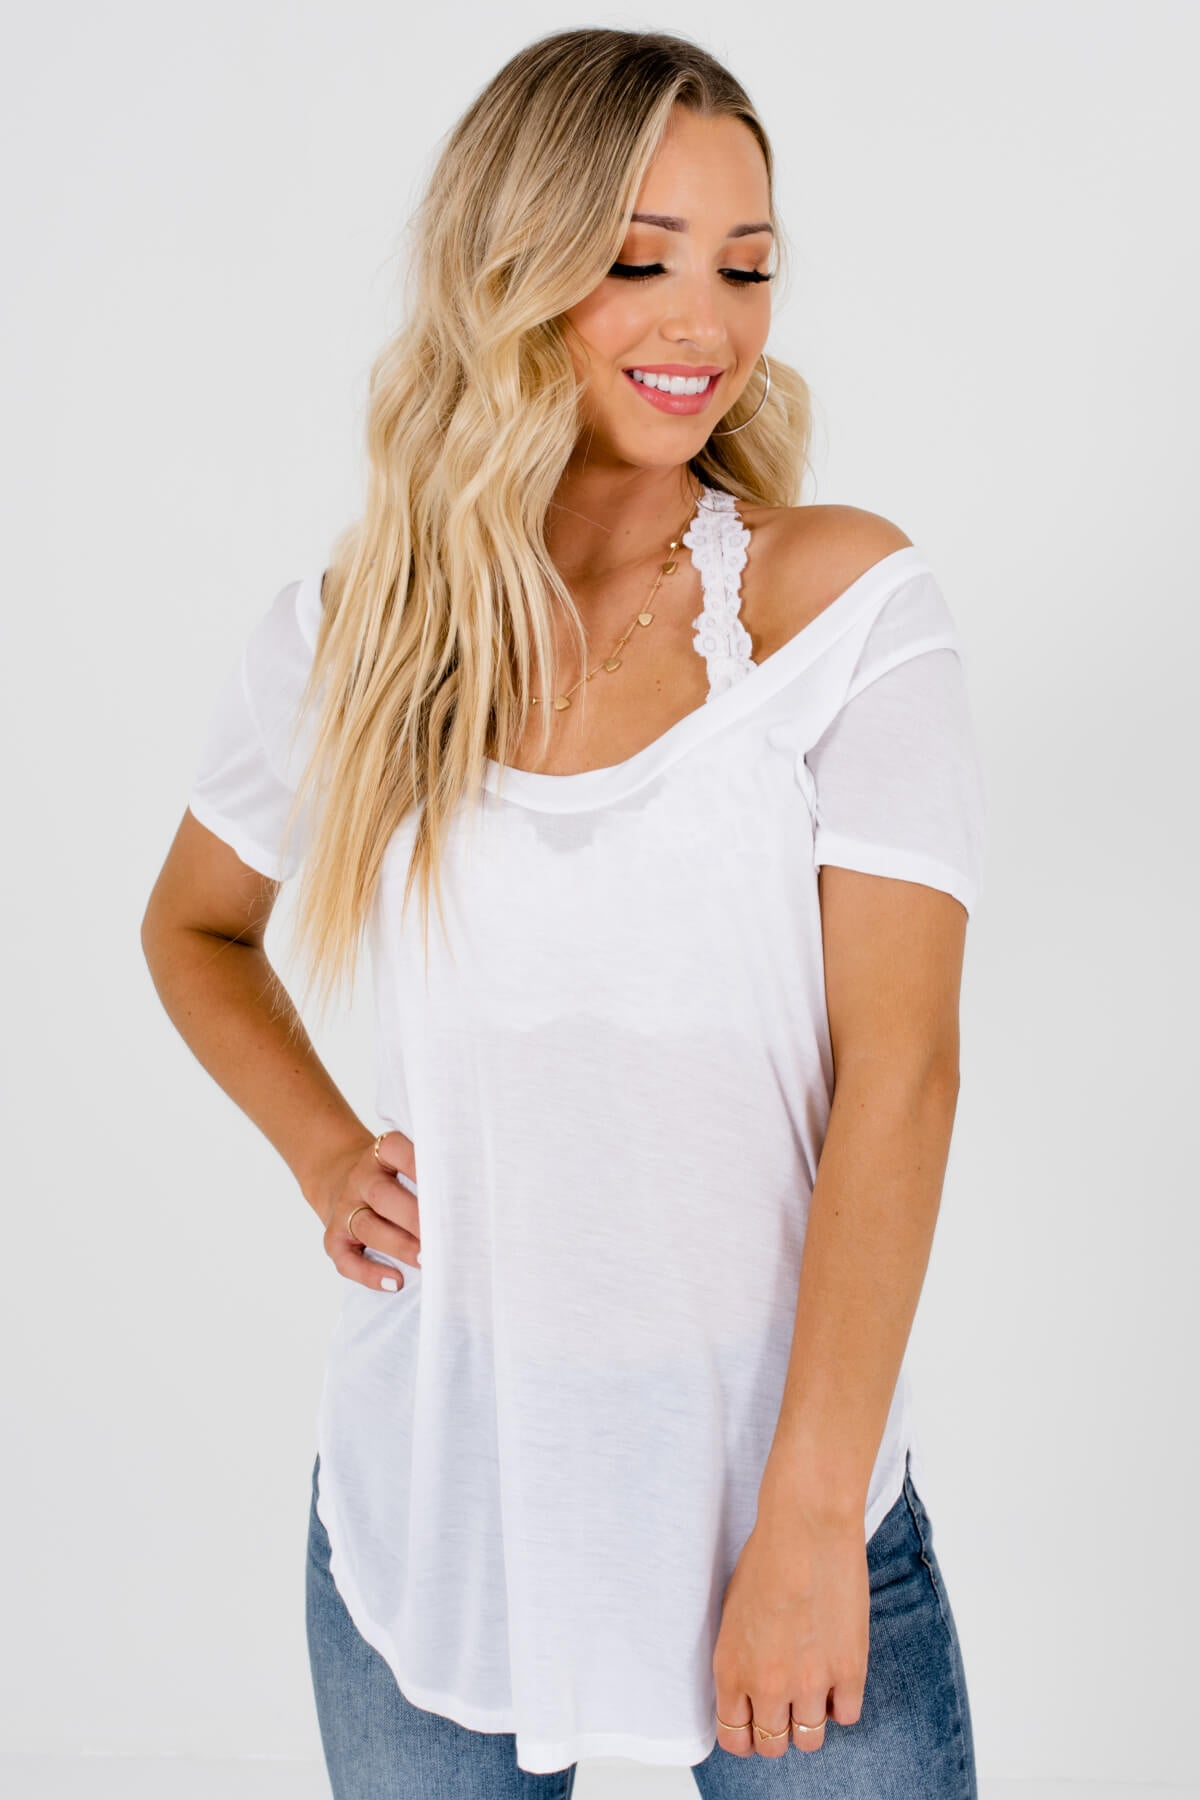 Semi-Sheer White Boutique T-Shirts for Women